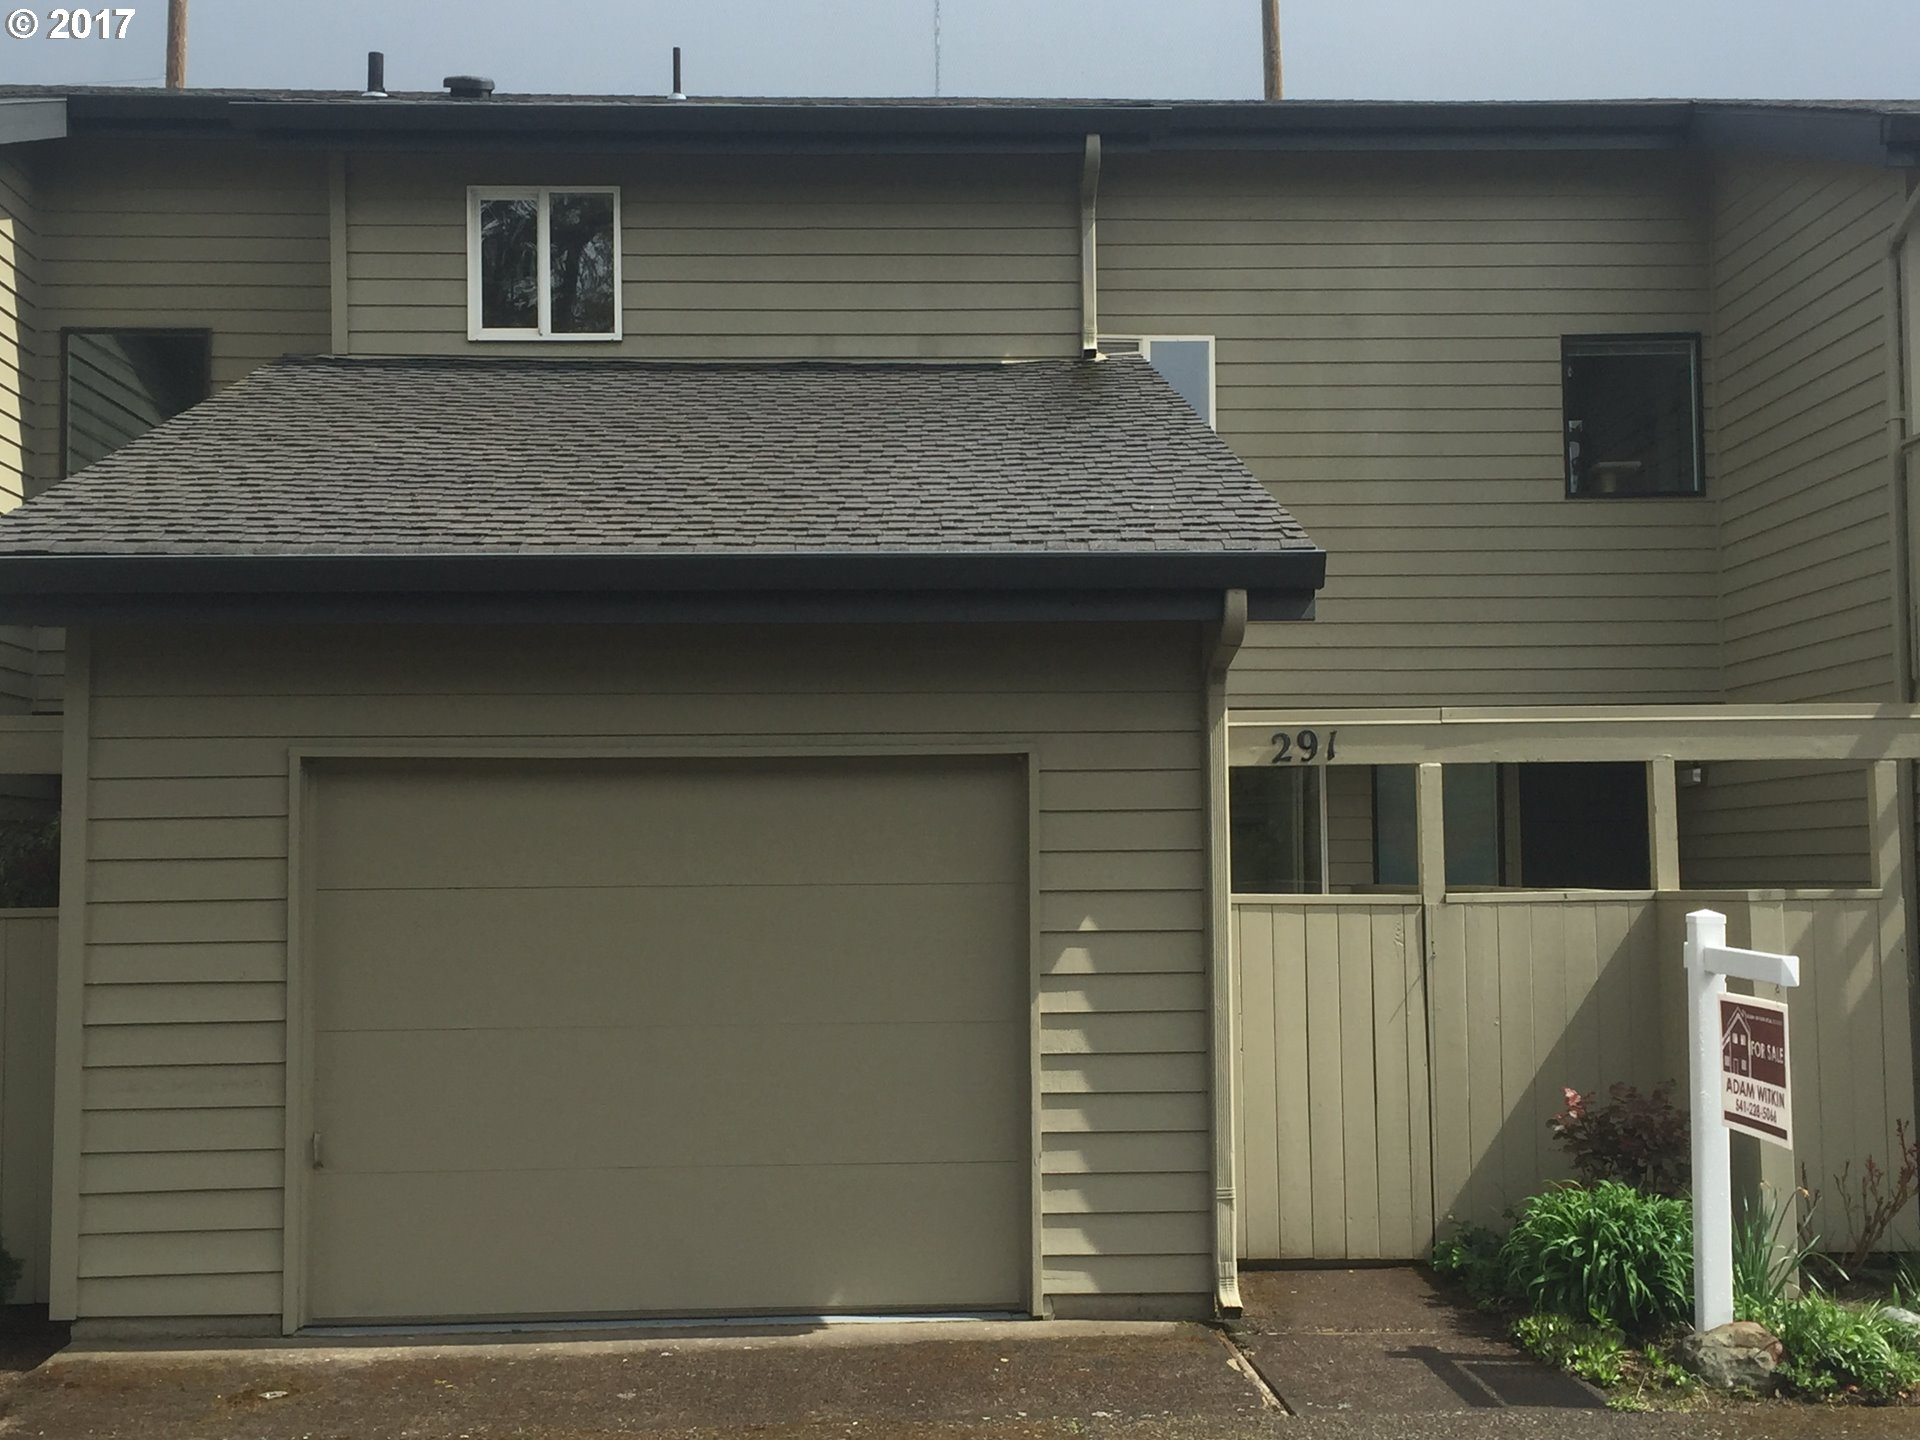 291 COUNTRY CLUB RD, Eugene, OR 97401